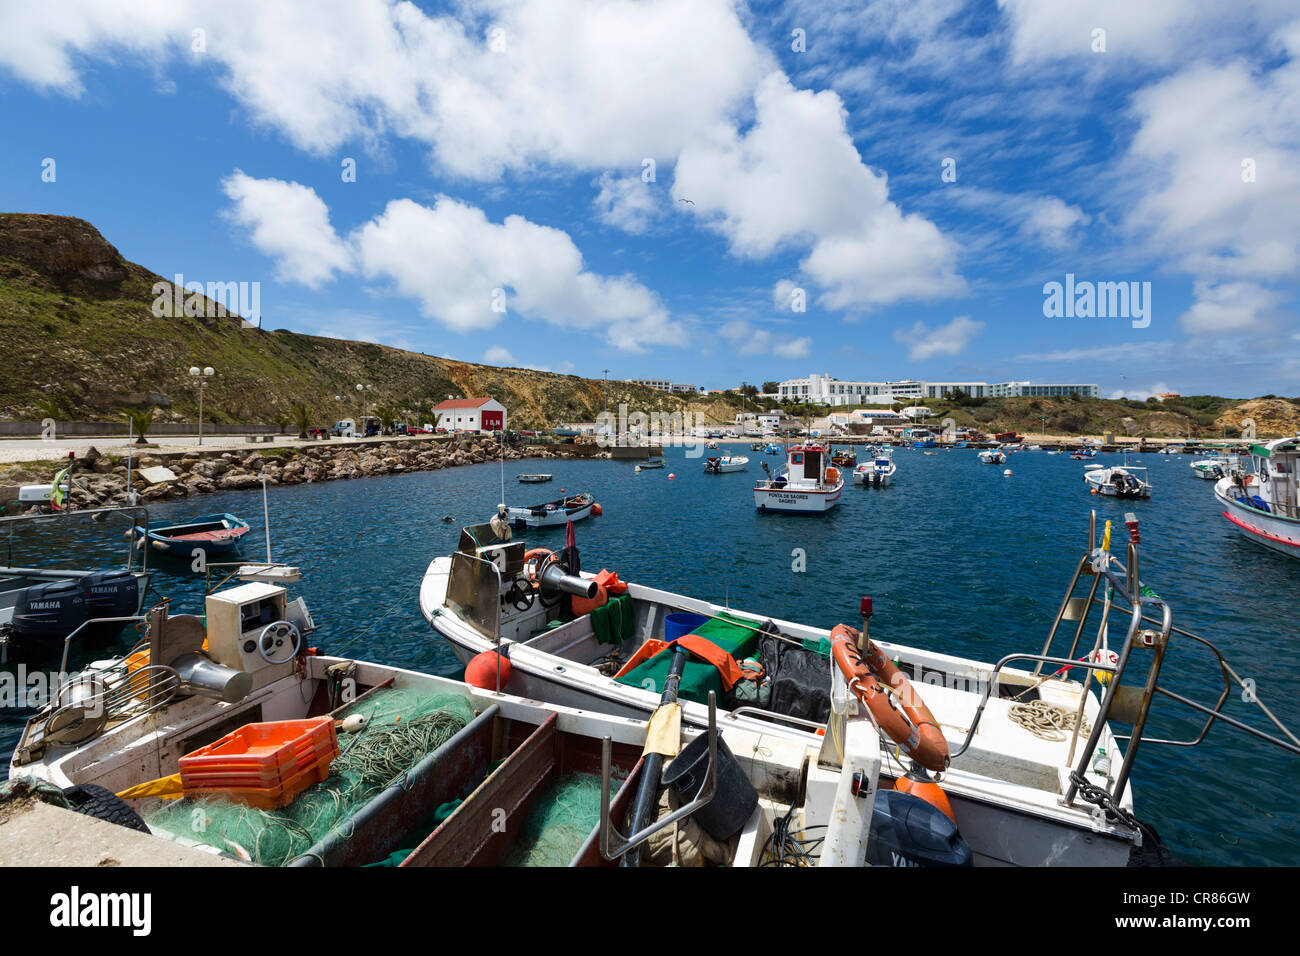 Local fishing boats in the harbour, Sagres, Algarve, Portugal - Stock Image